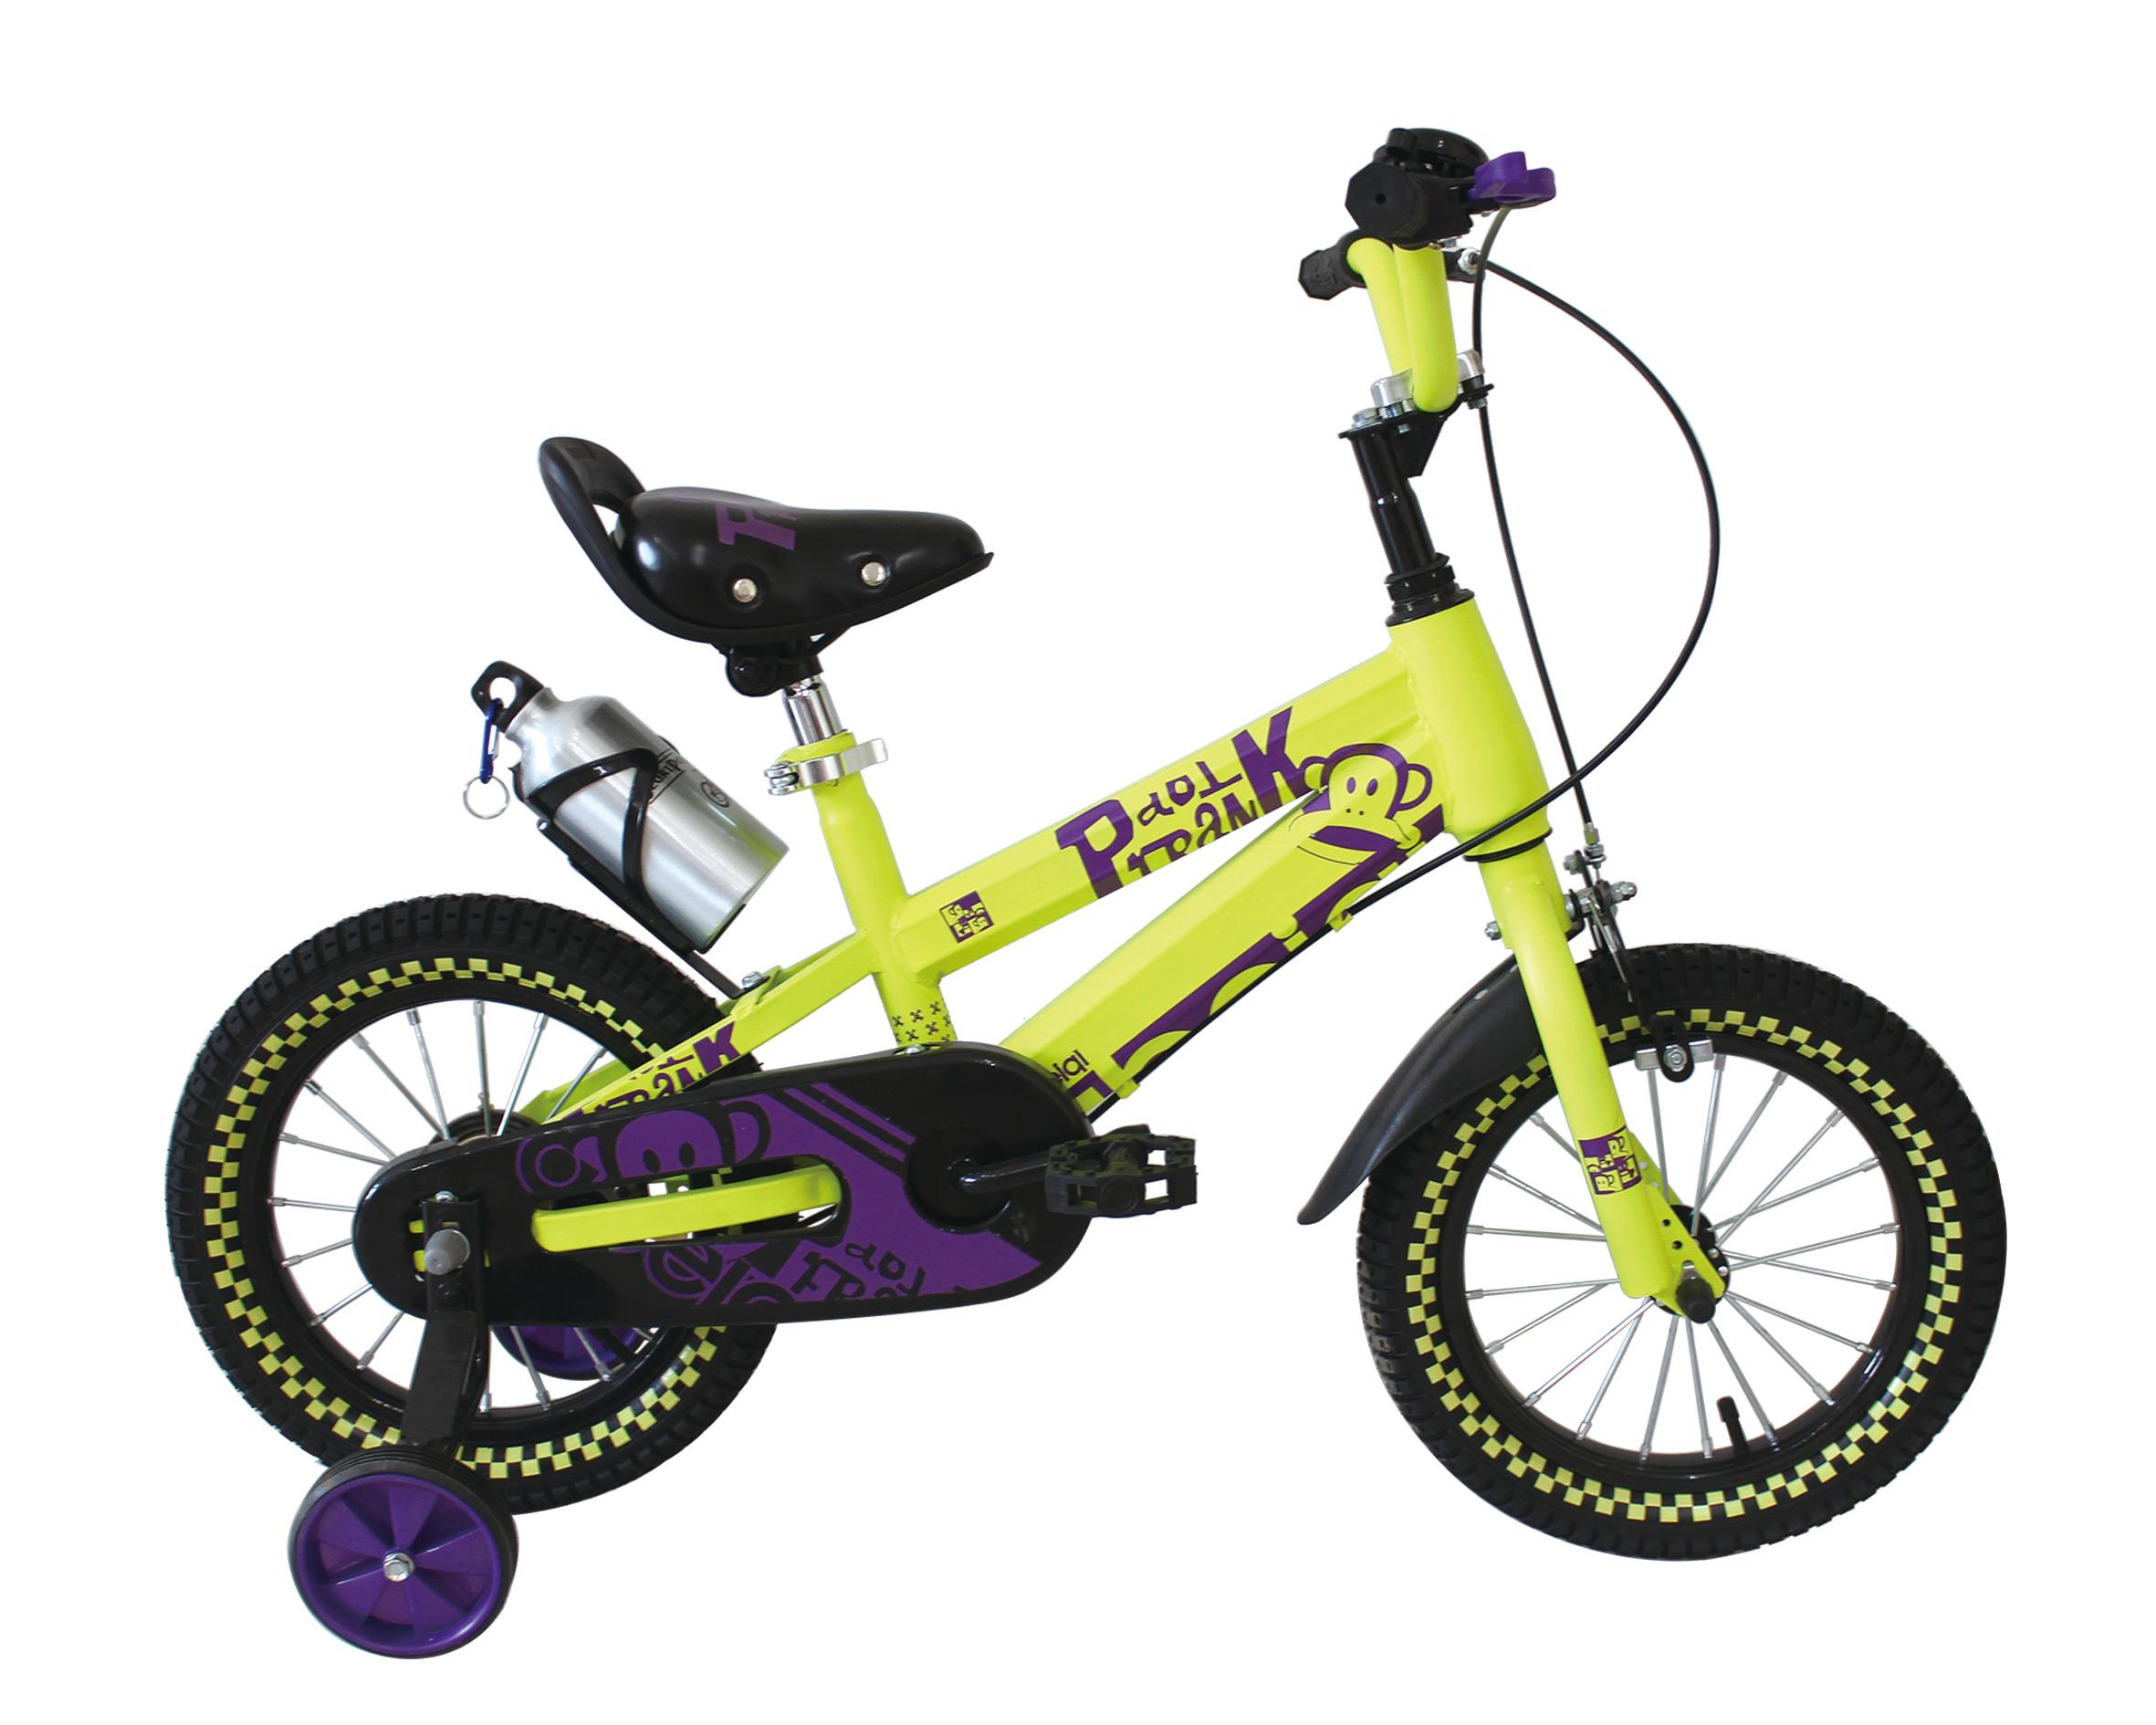 Kids bike type chil05